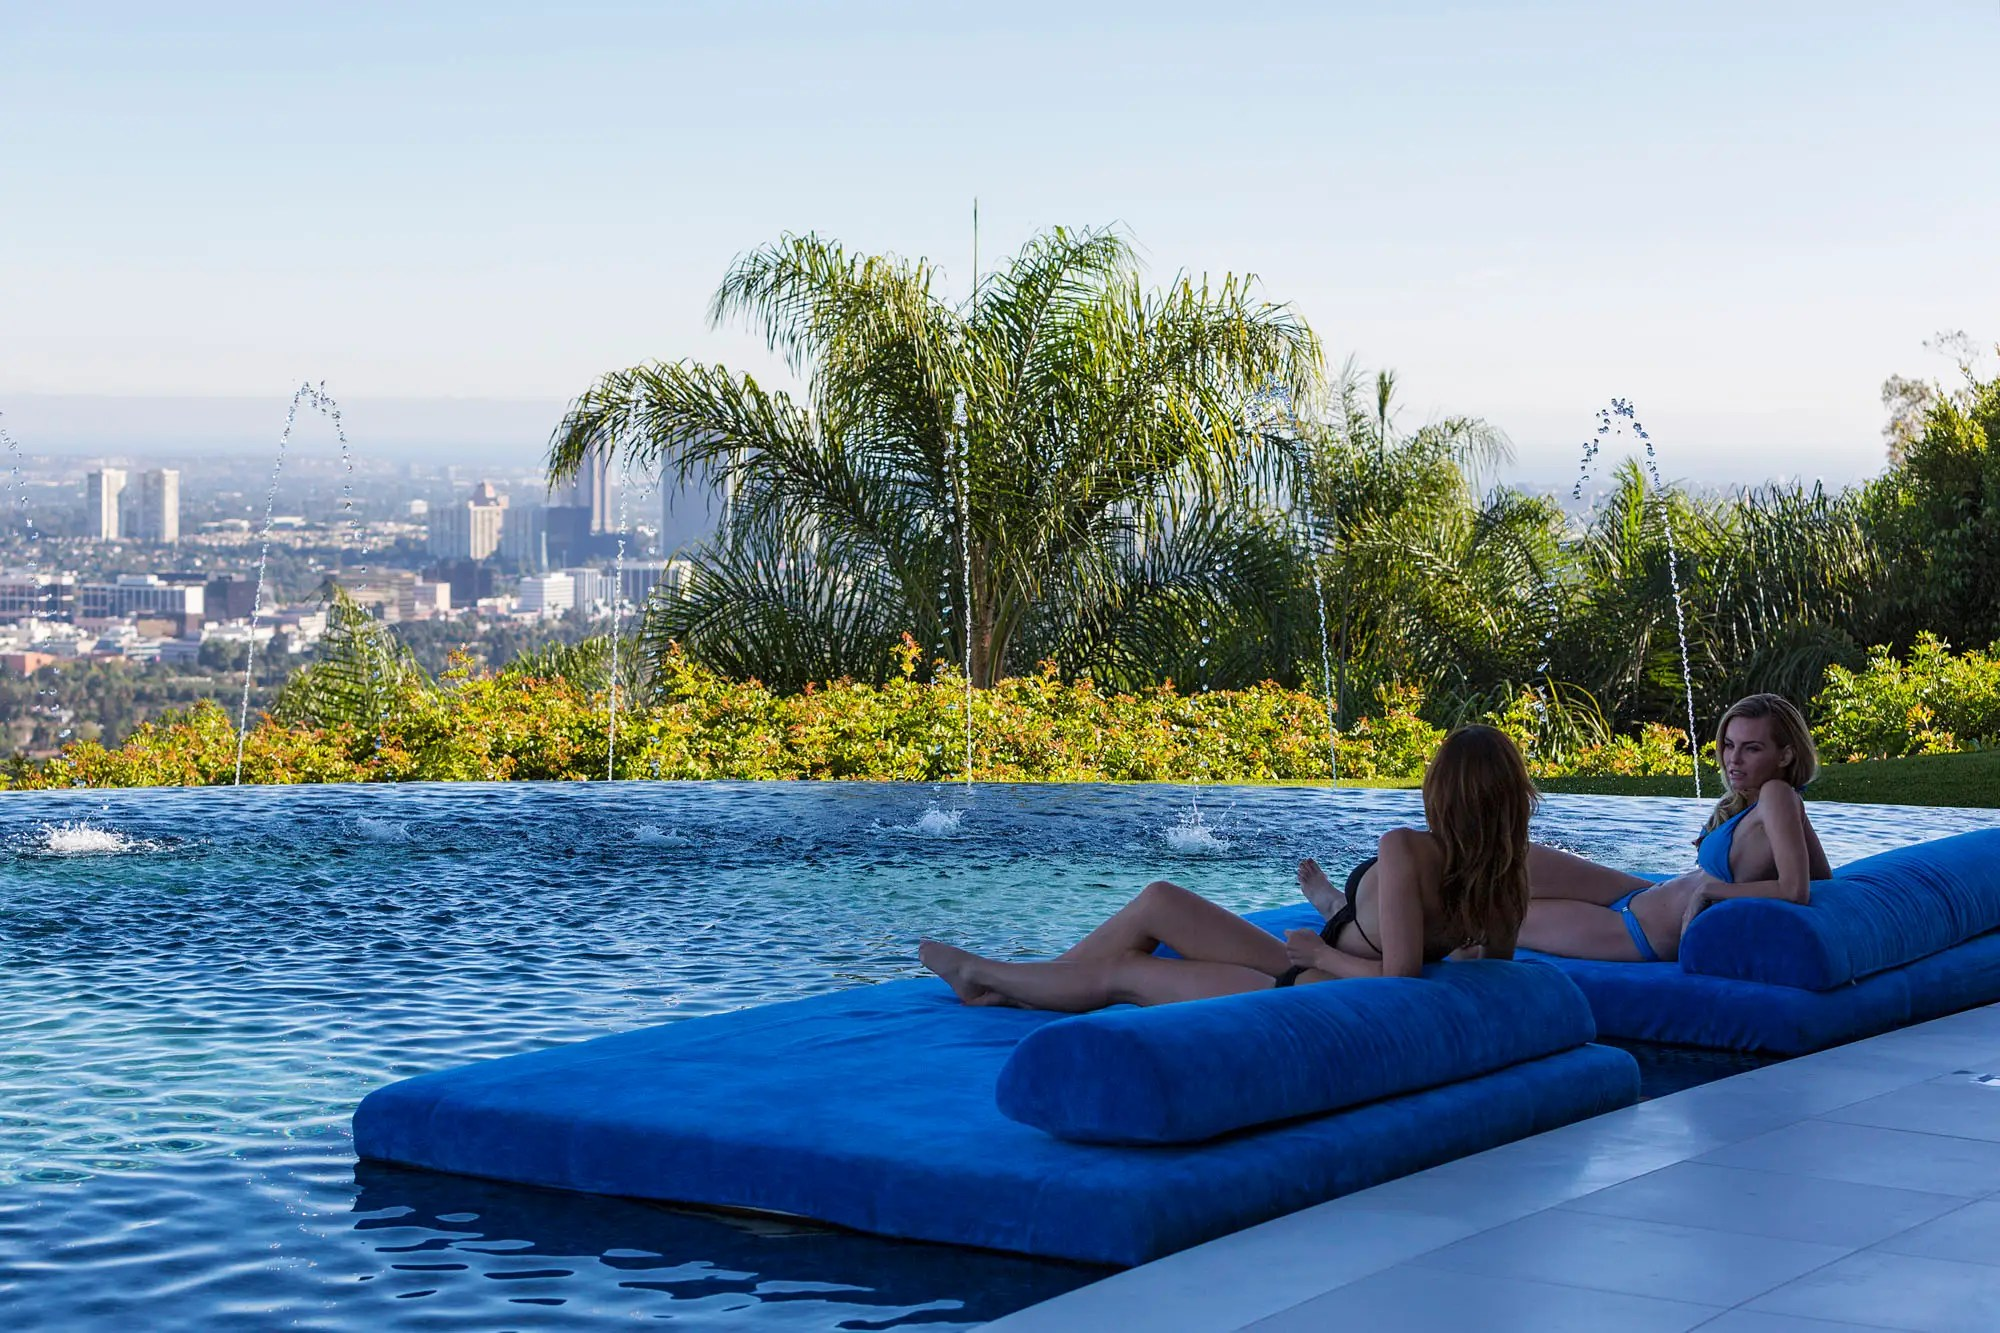 It comes with lounge beds in the pool for guests to tan and relax on.